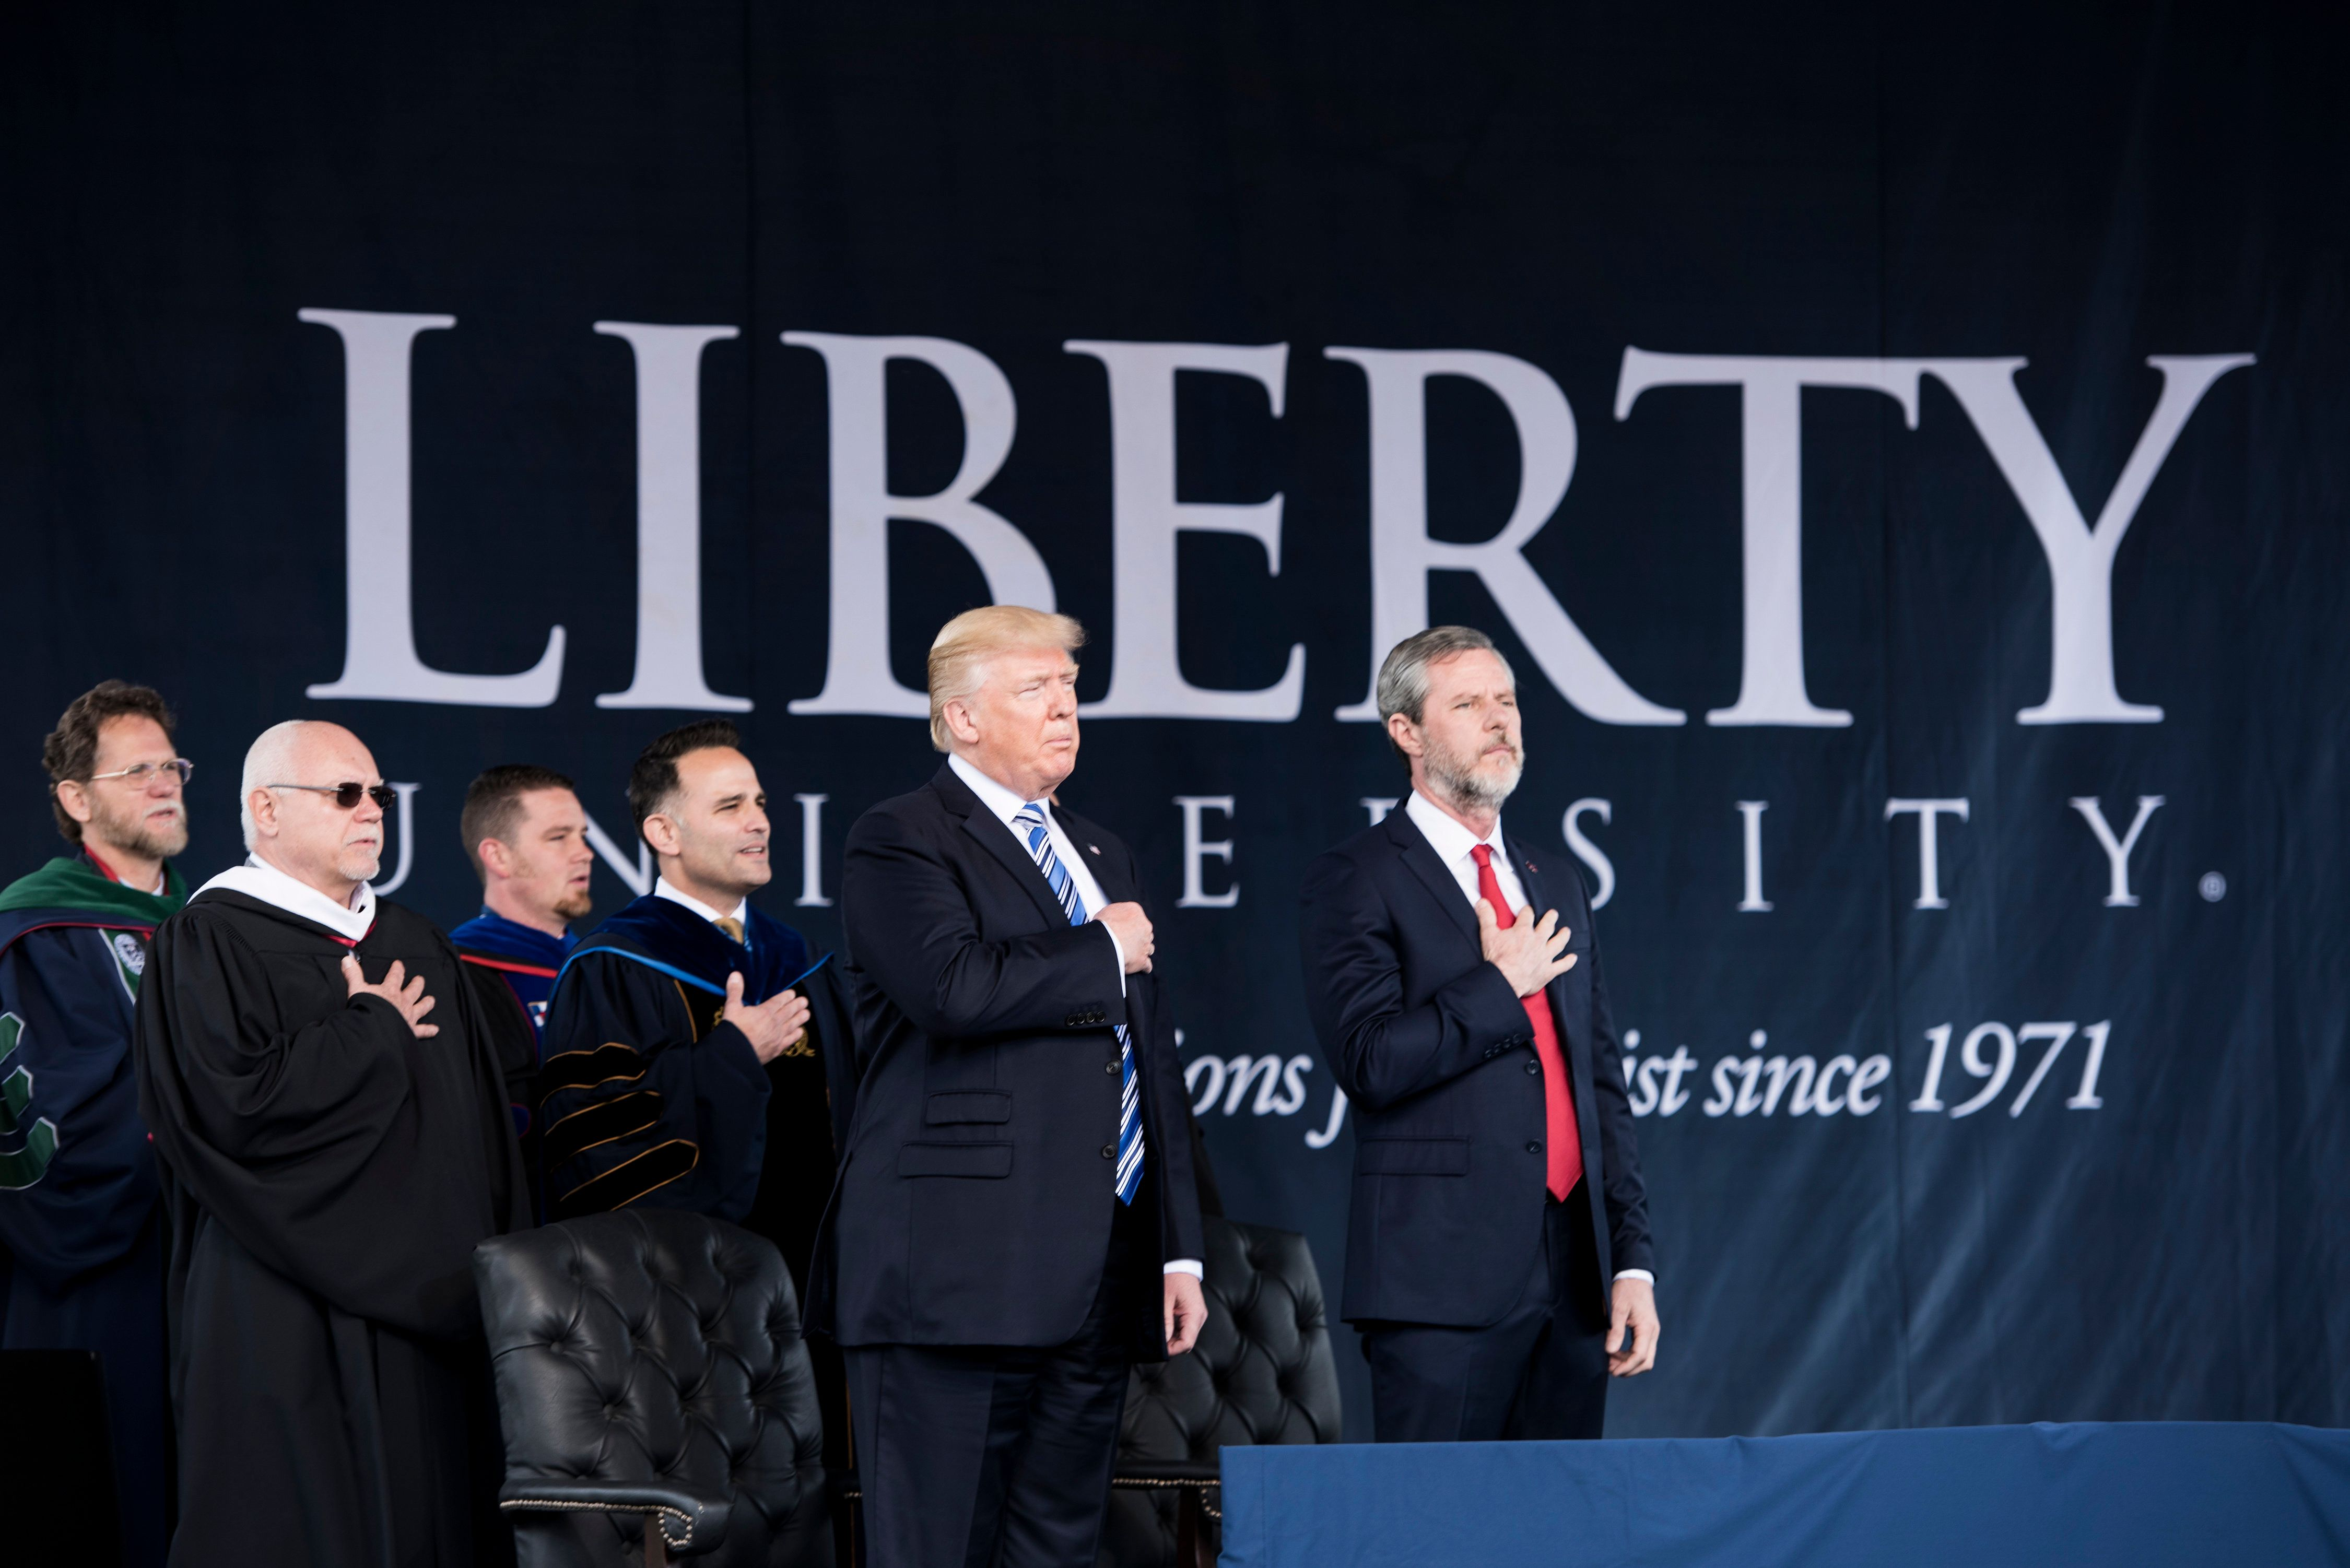 Trump, Falwell and others at the school's 2017 commencement ceremony.